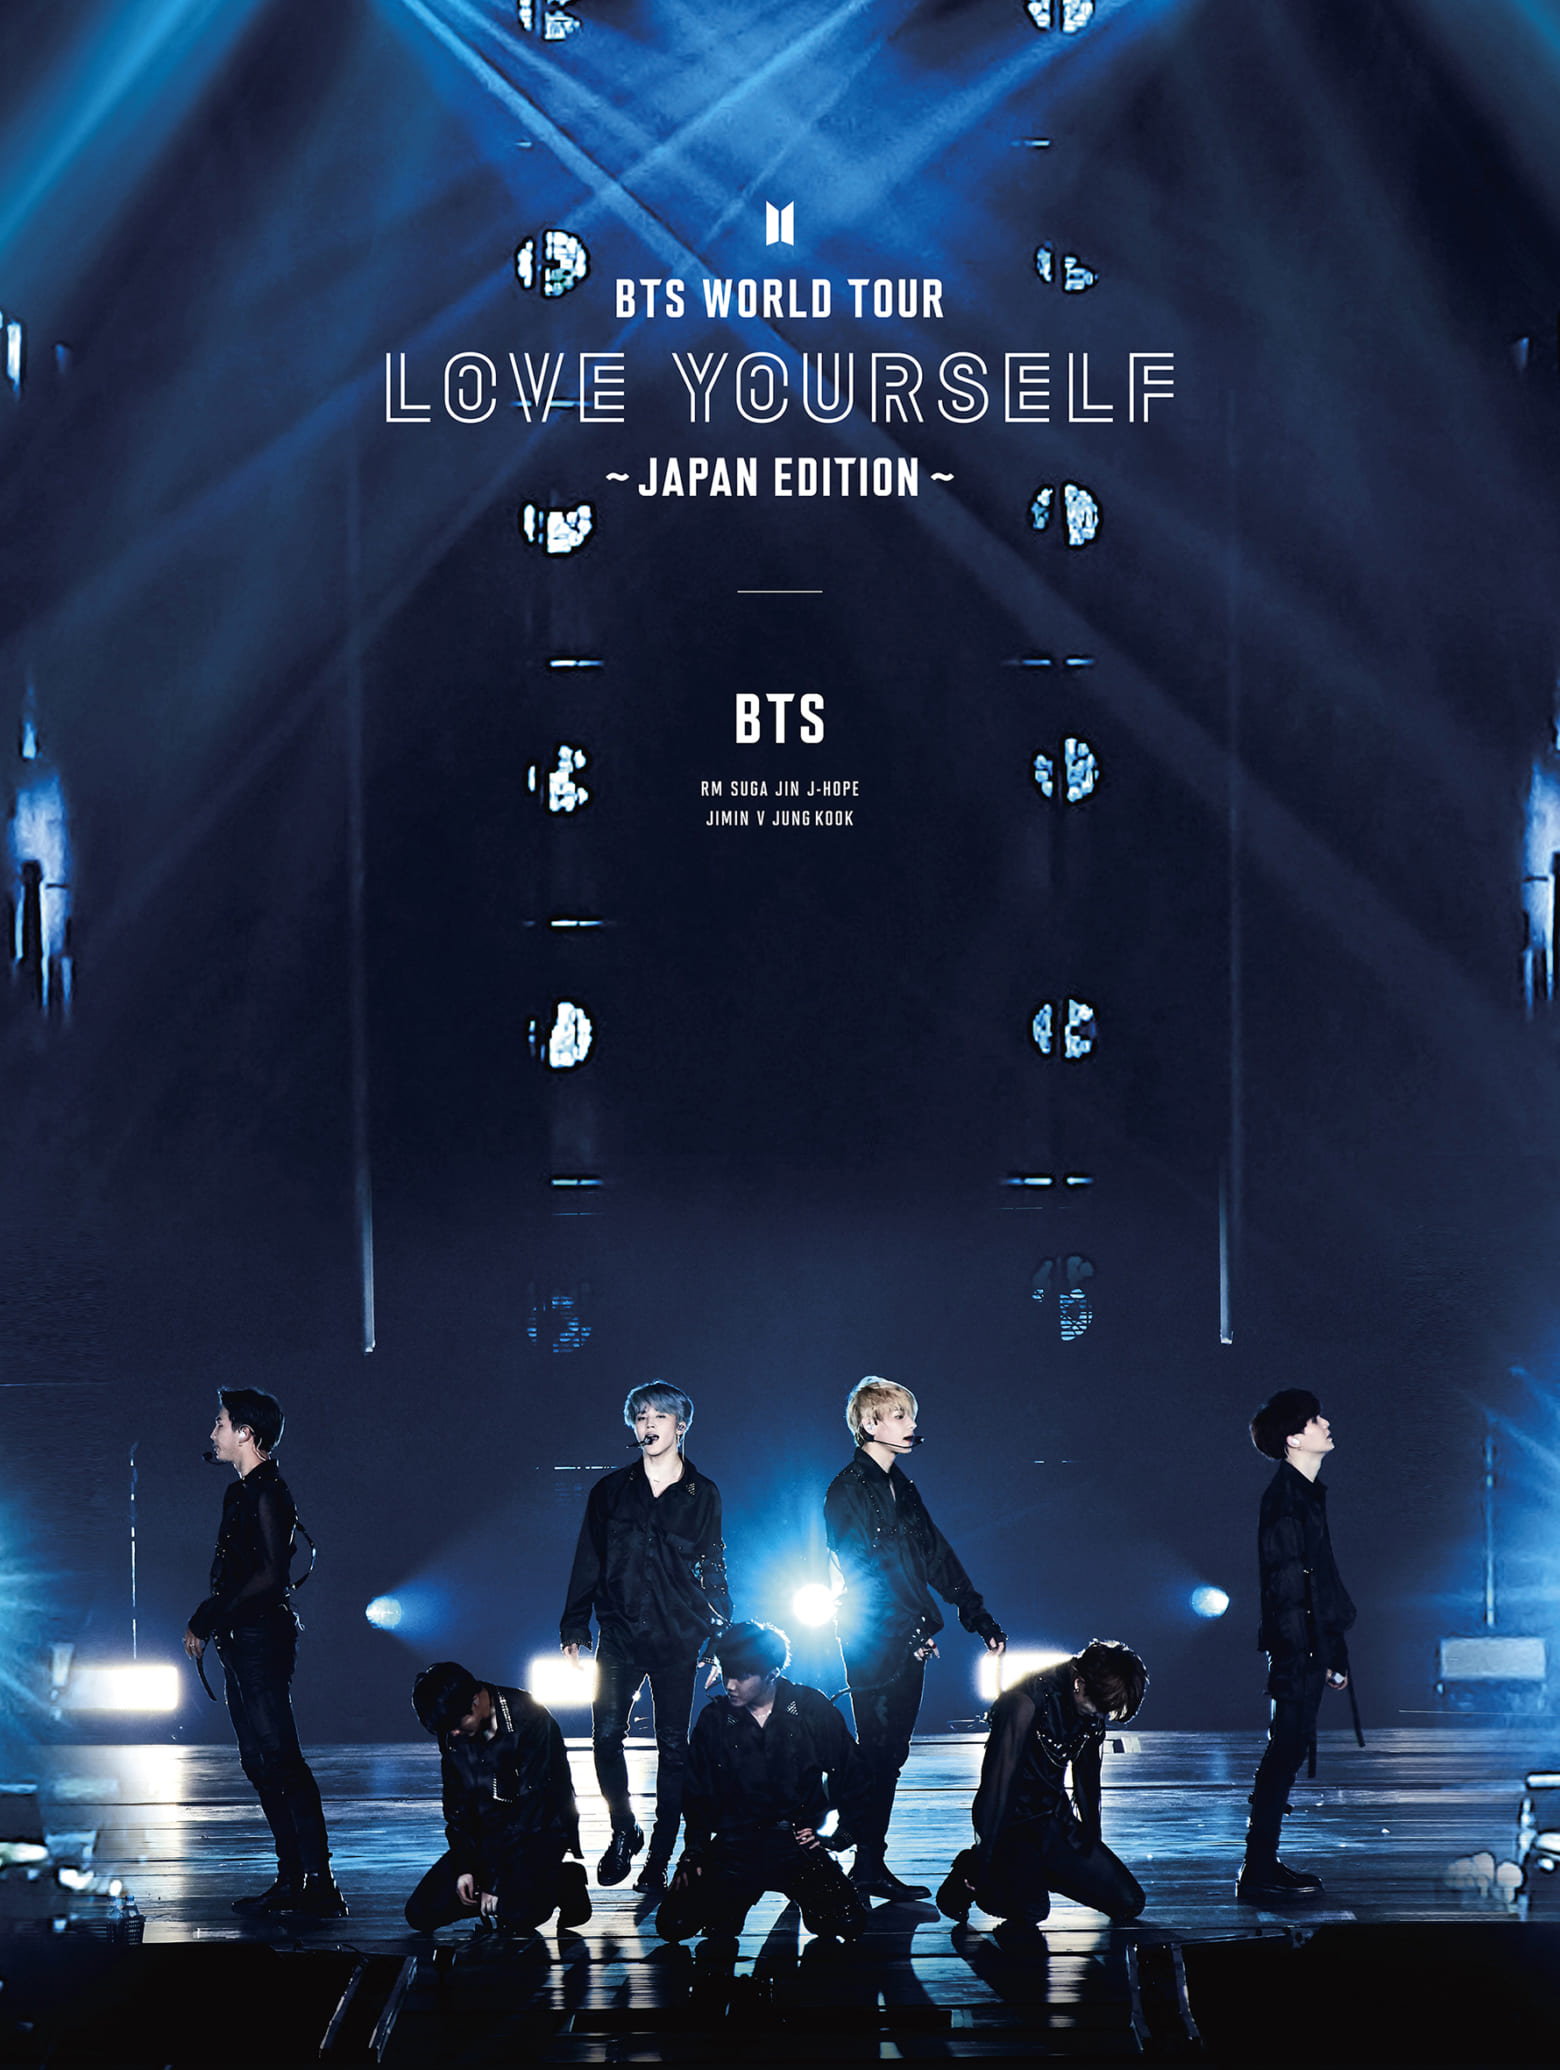 「BTS WORLD TOUR 'LOVE YOURSELF'」初回限定盤